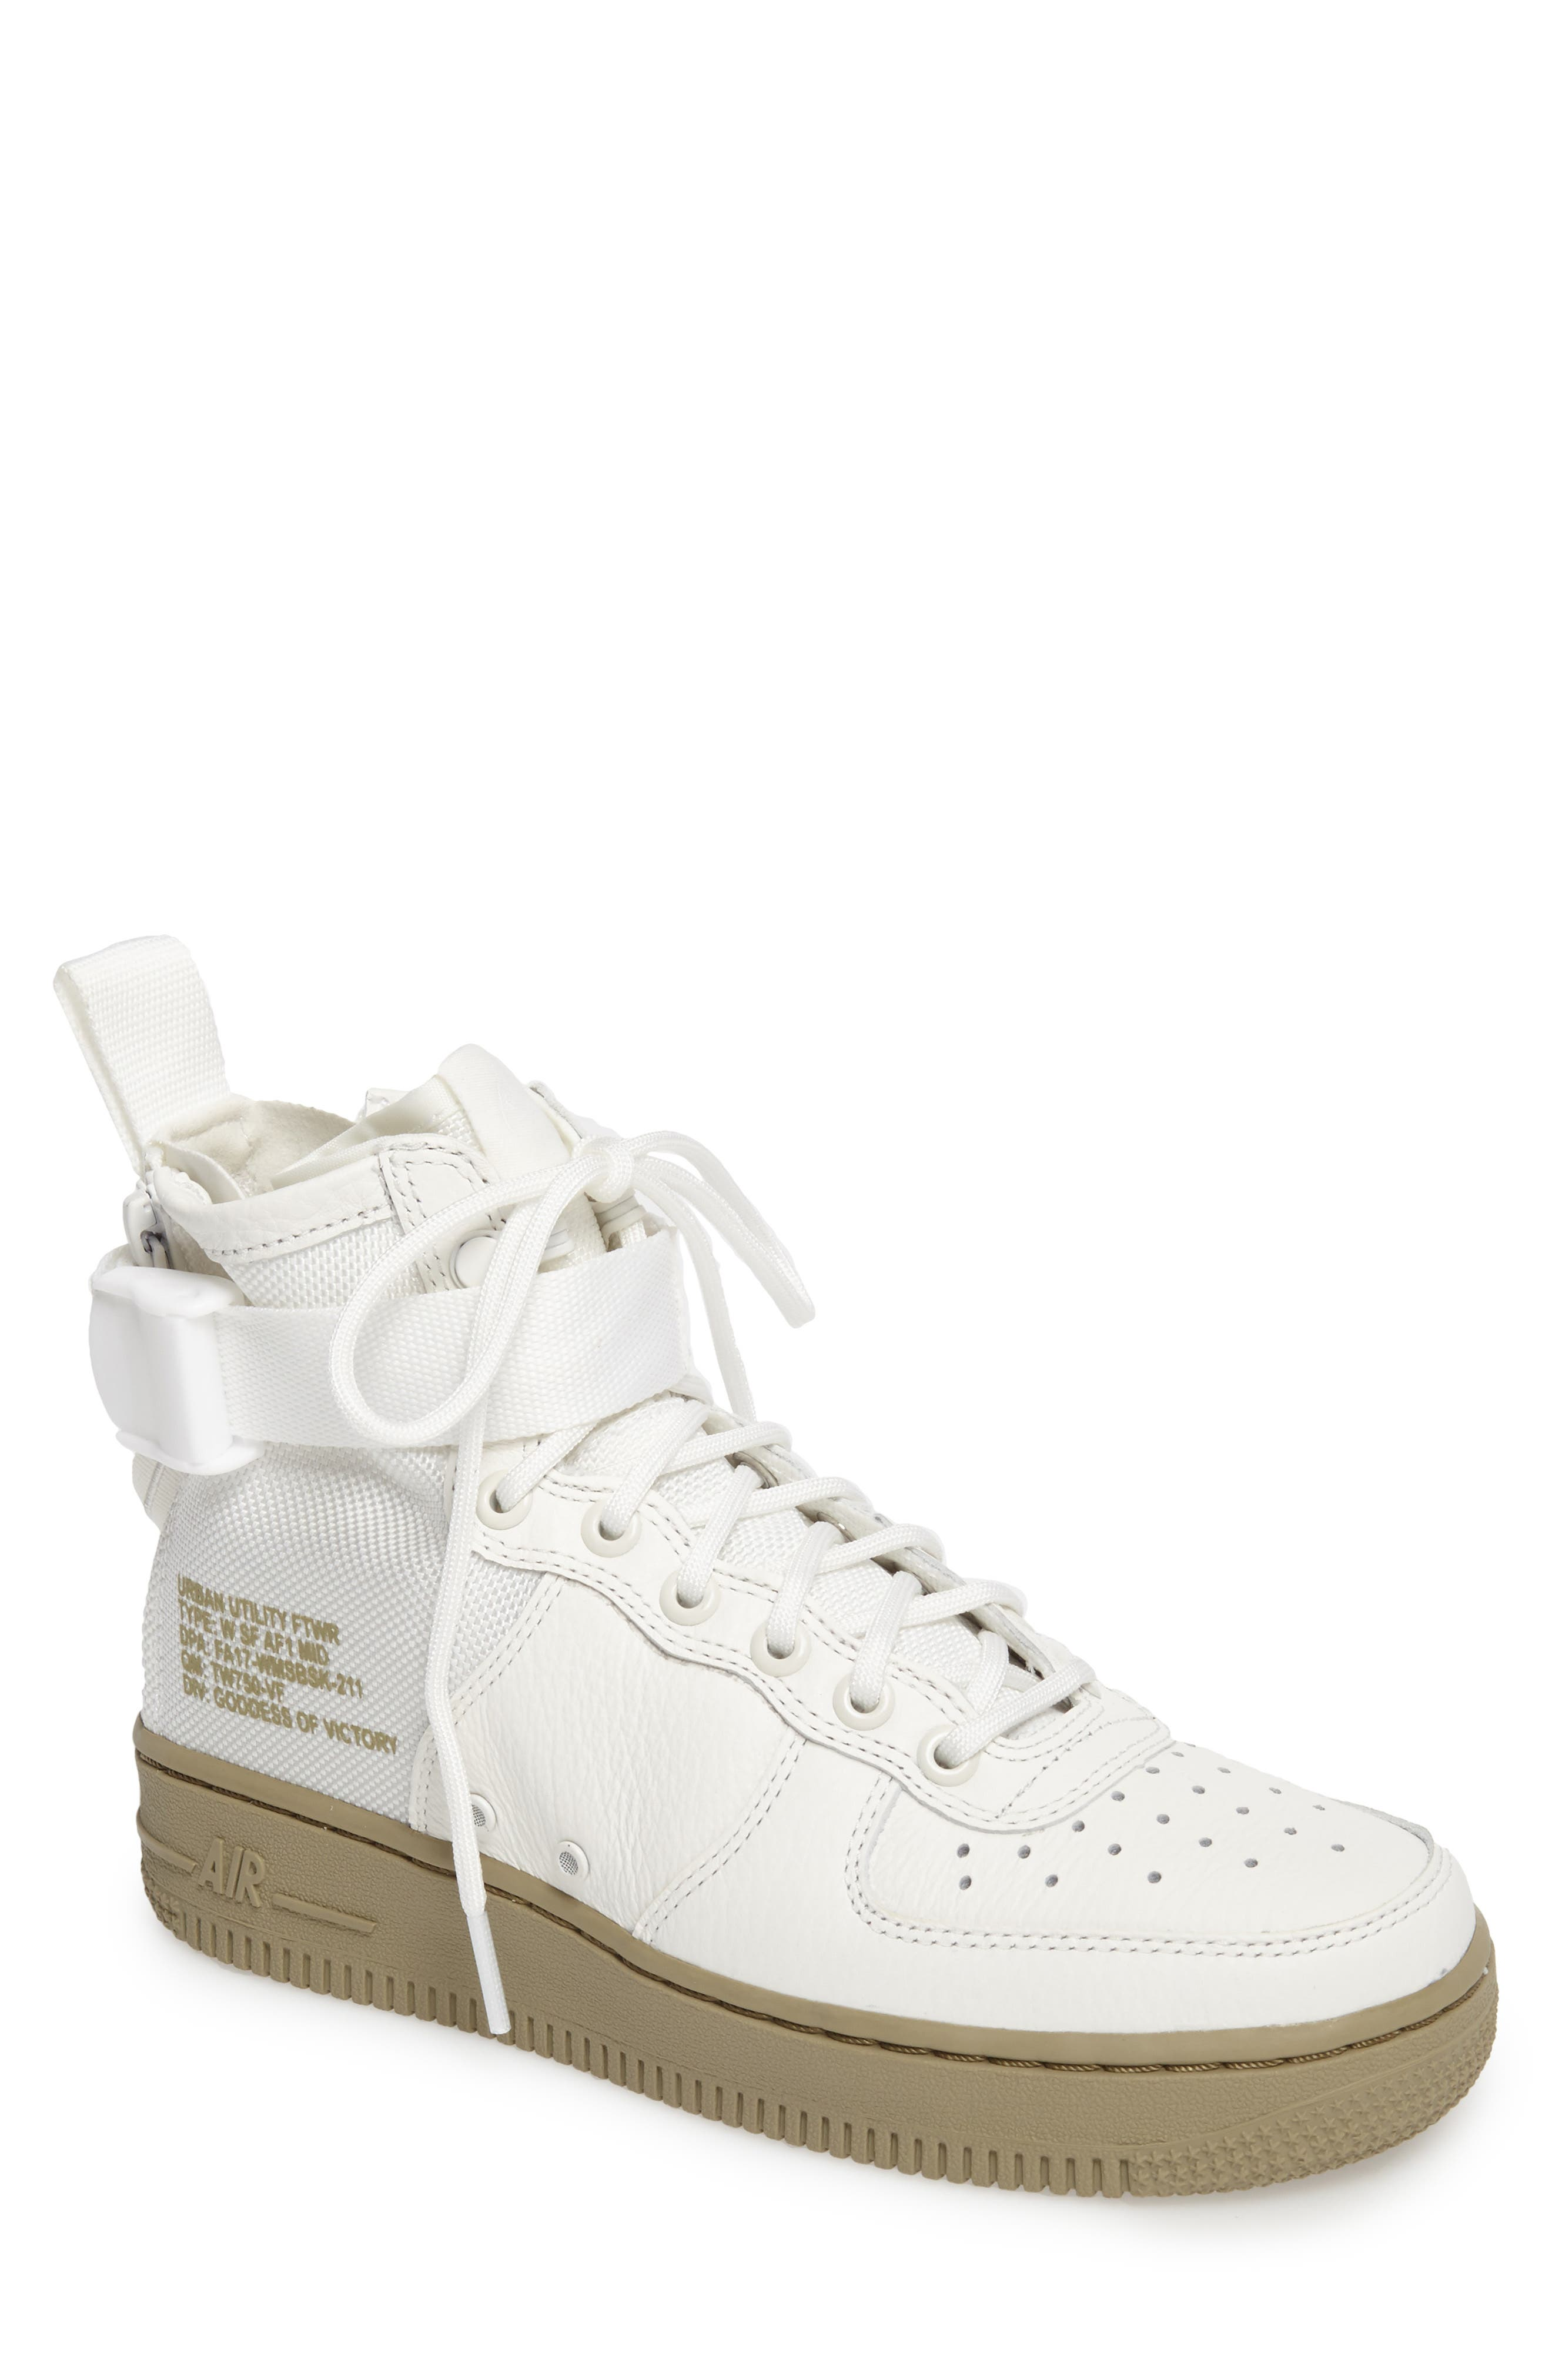 SF Air Force 1 Mid Sneaker,                         Main,                         color, IVORY/IVORY-MARS STONE